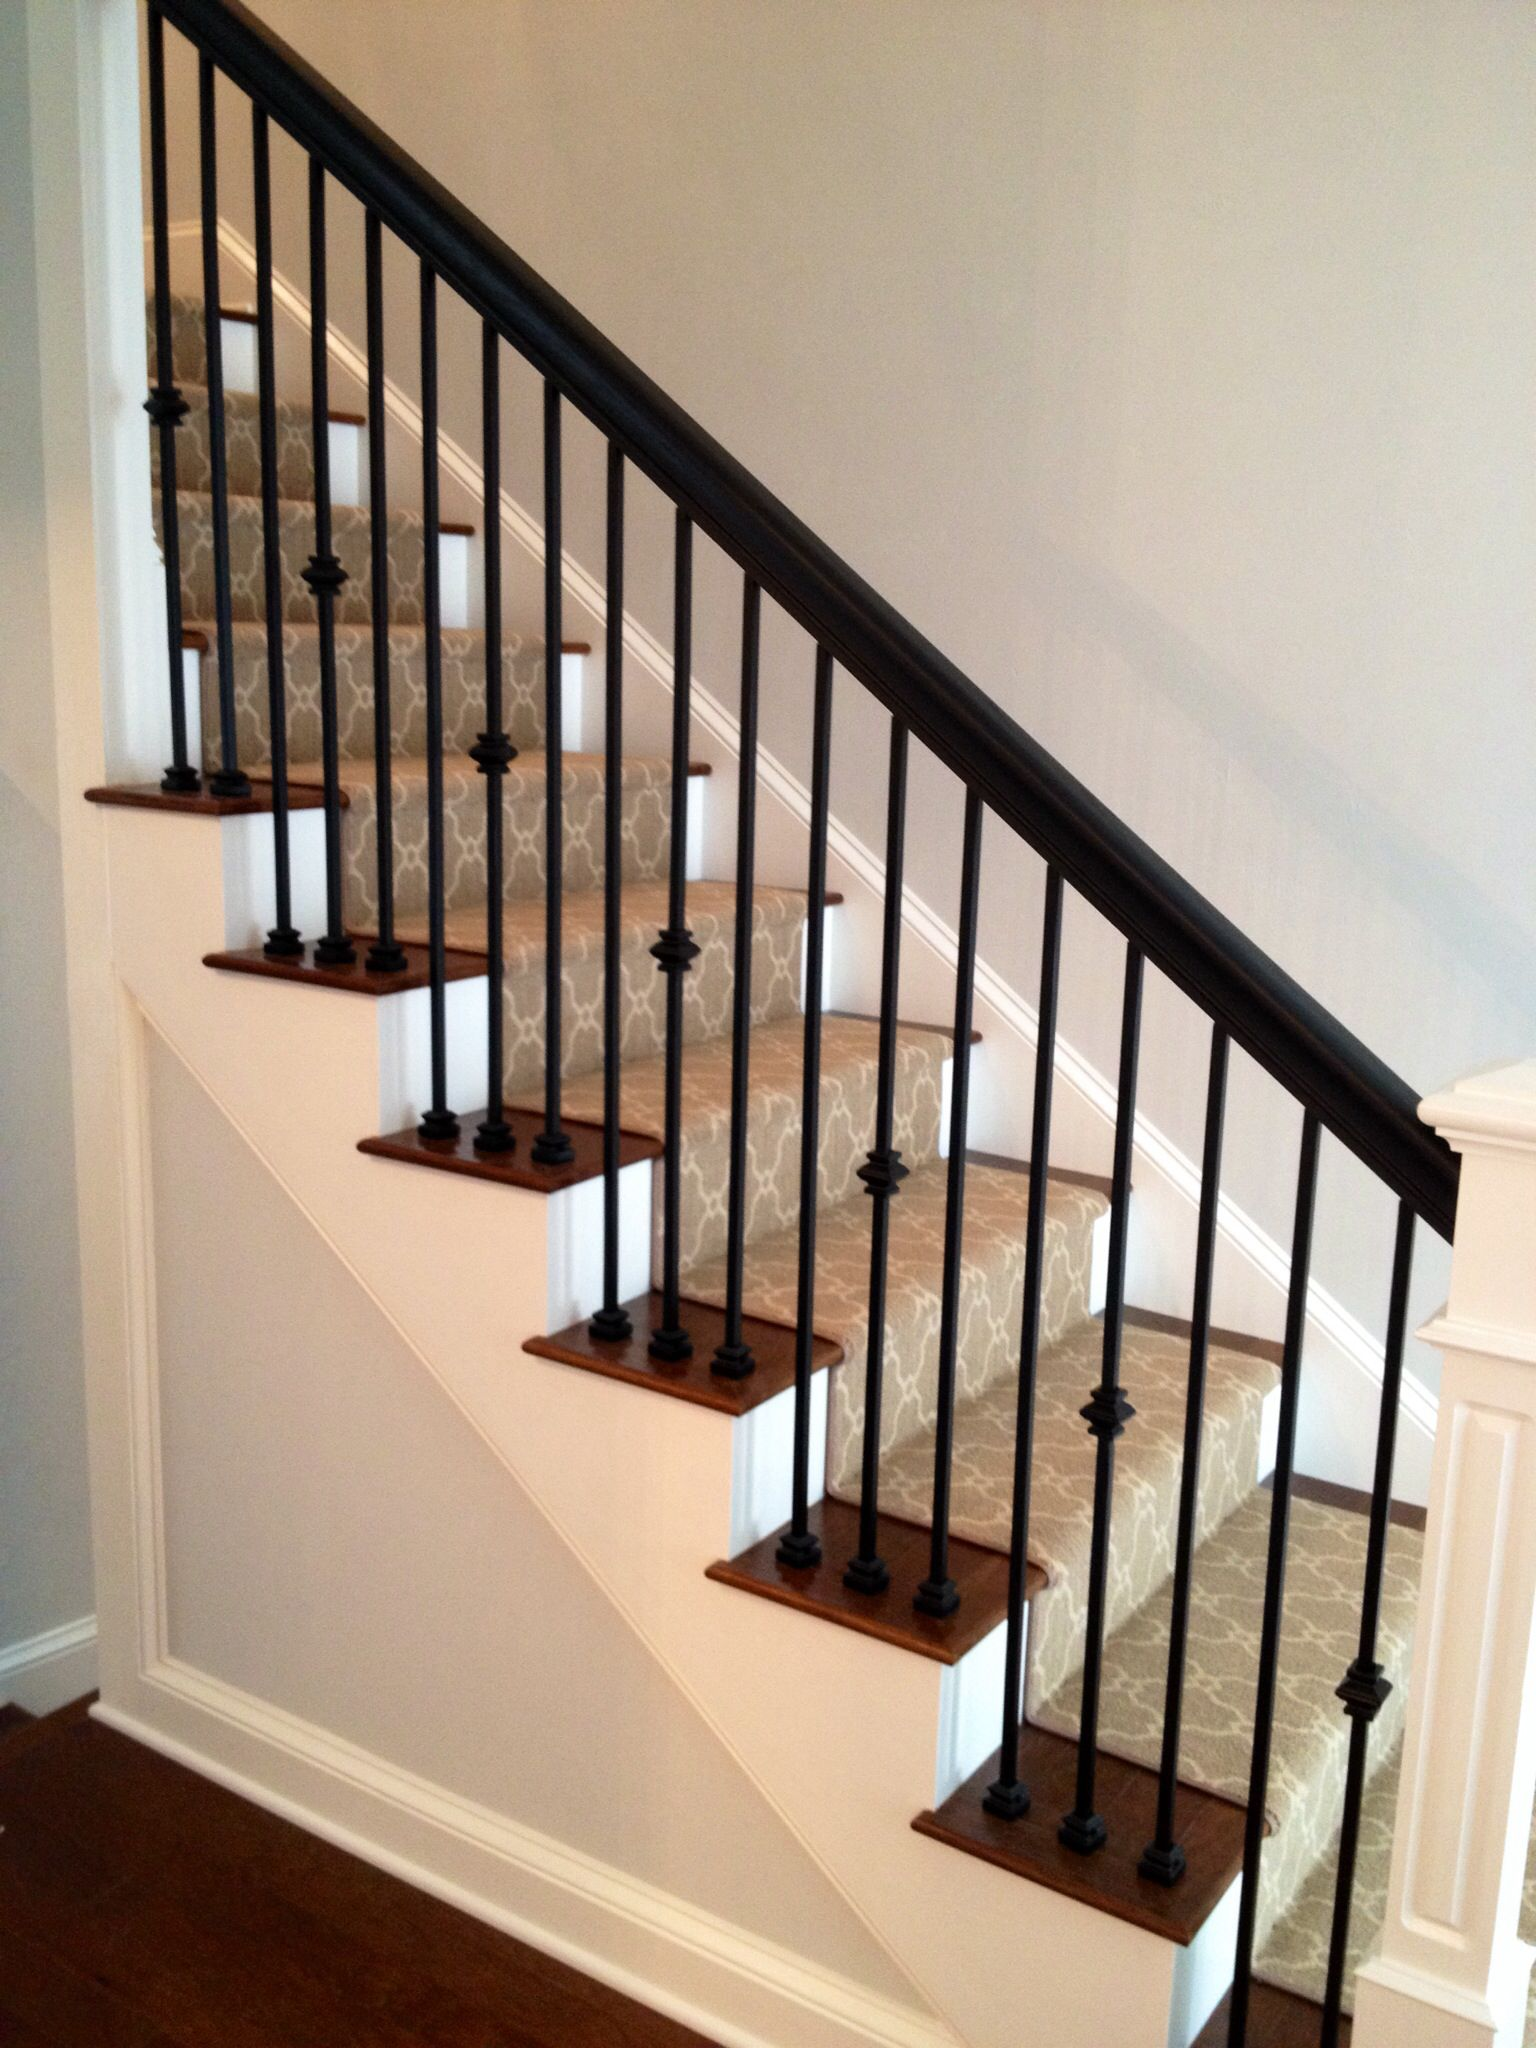 Superb Jennifer Taylor Design  Custom Staircase  Iron Spindles   Wood Handrail    Wood Newel Post   Pattern Stair Runner